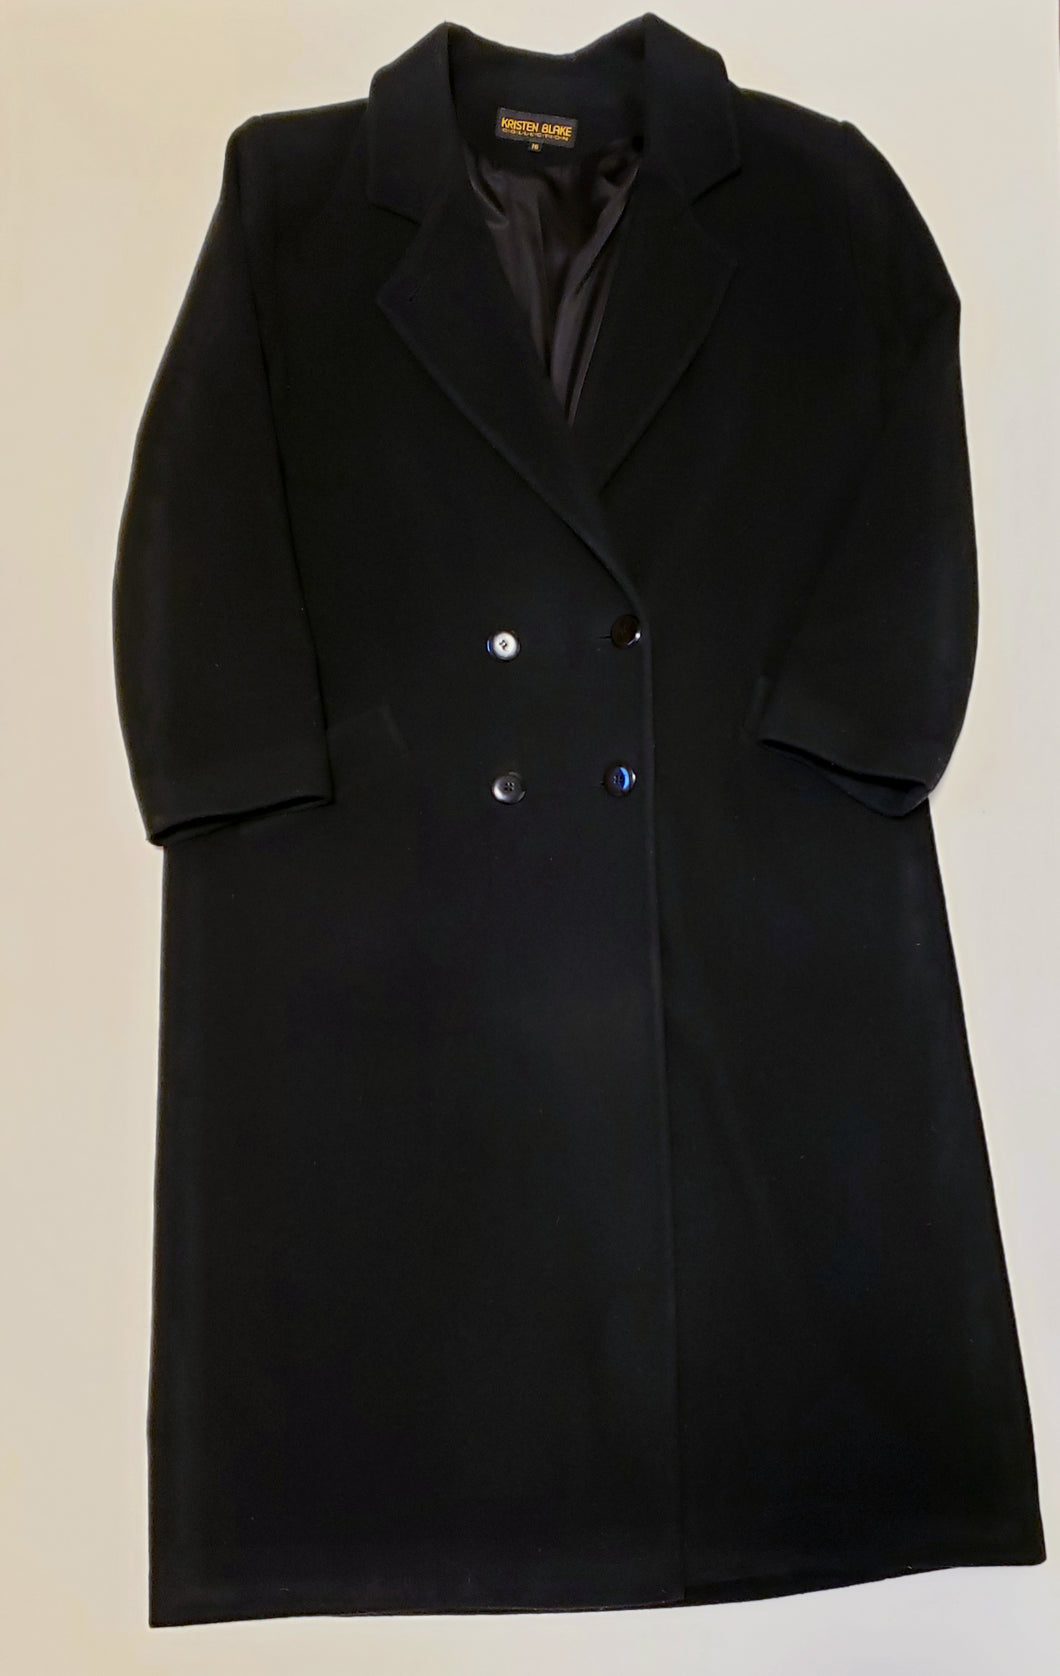 Kristen Blake Trench Coat - (Un)Popular Fashion Society